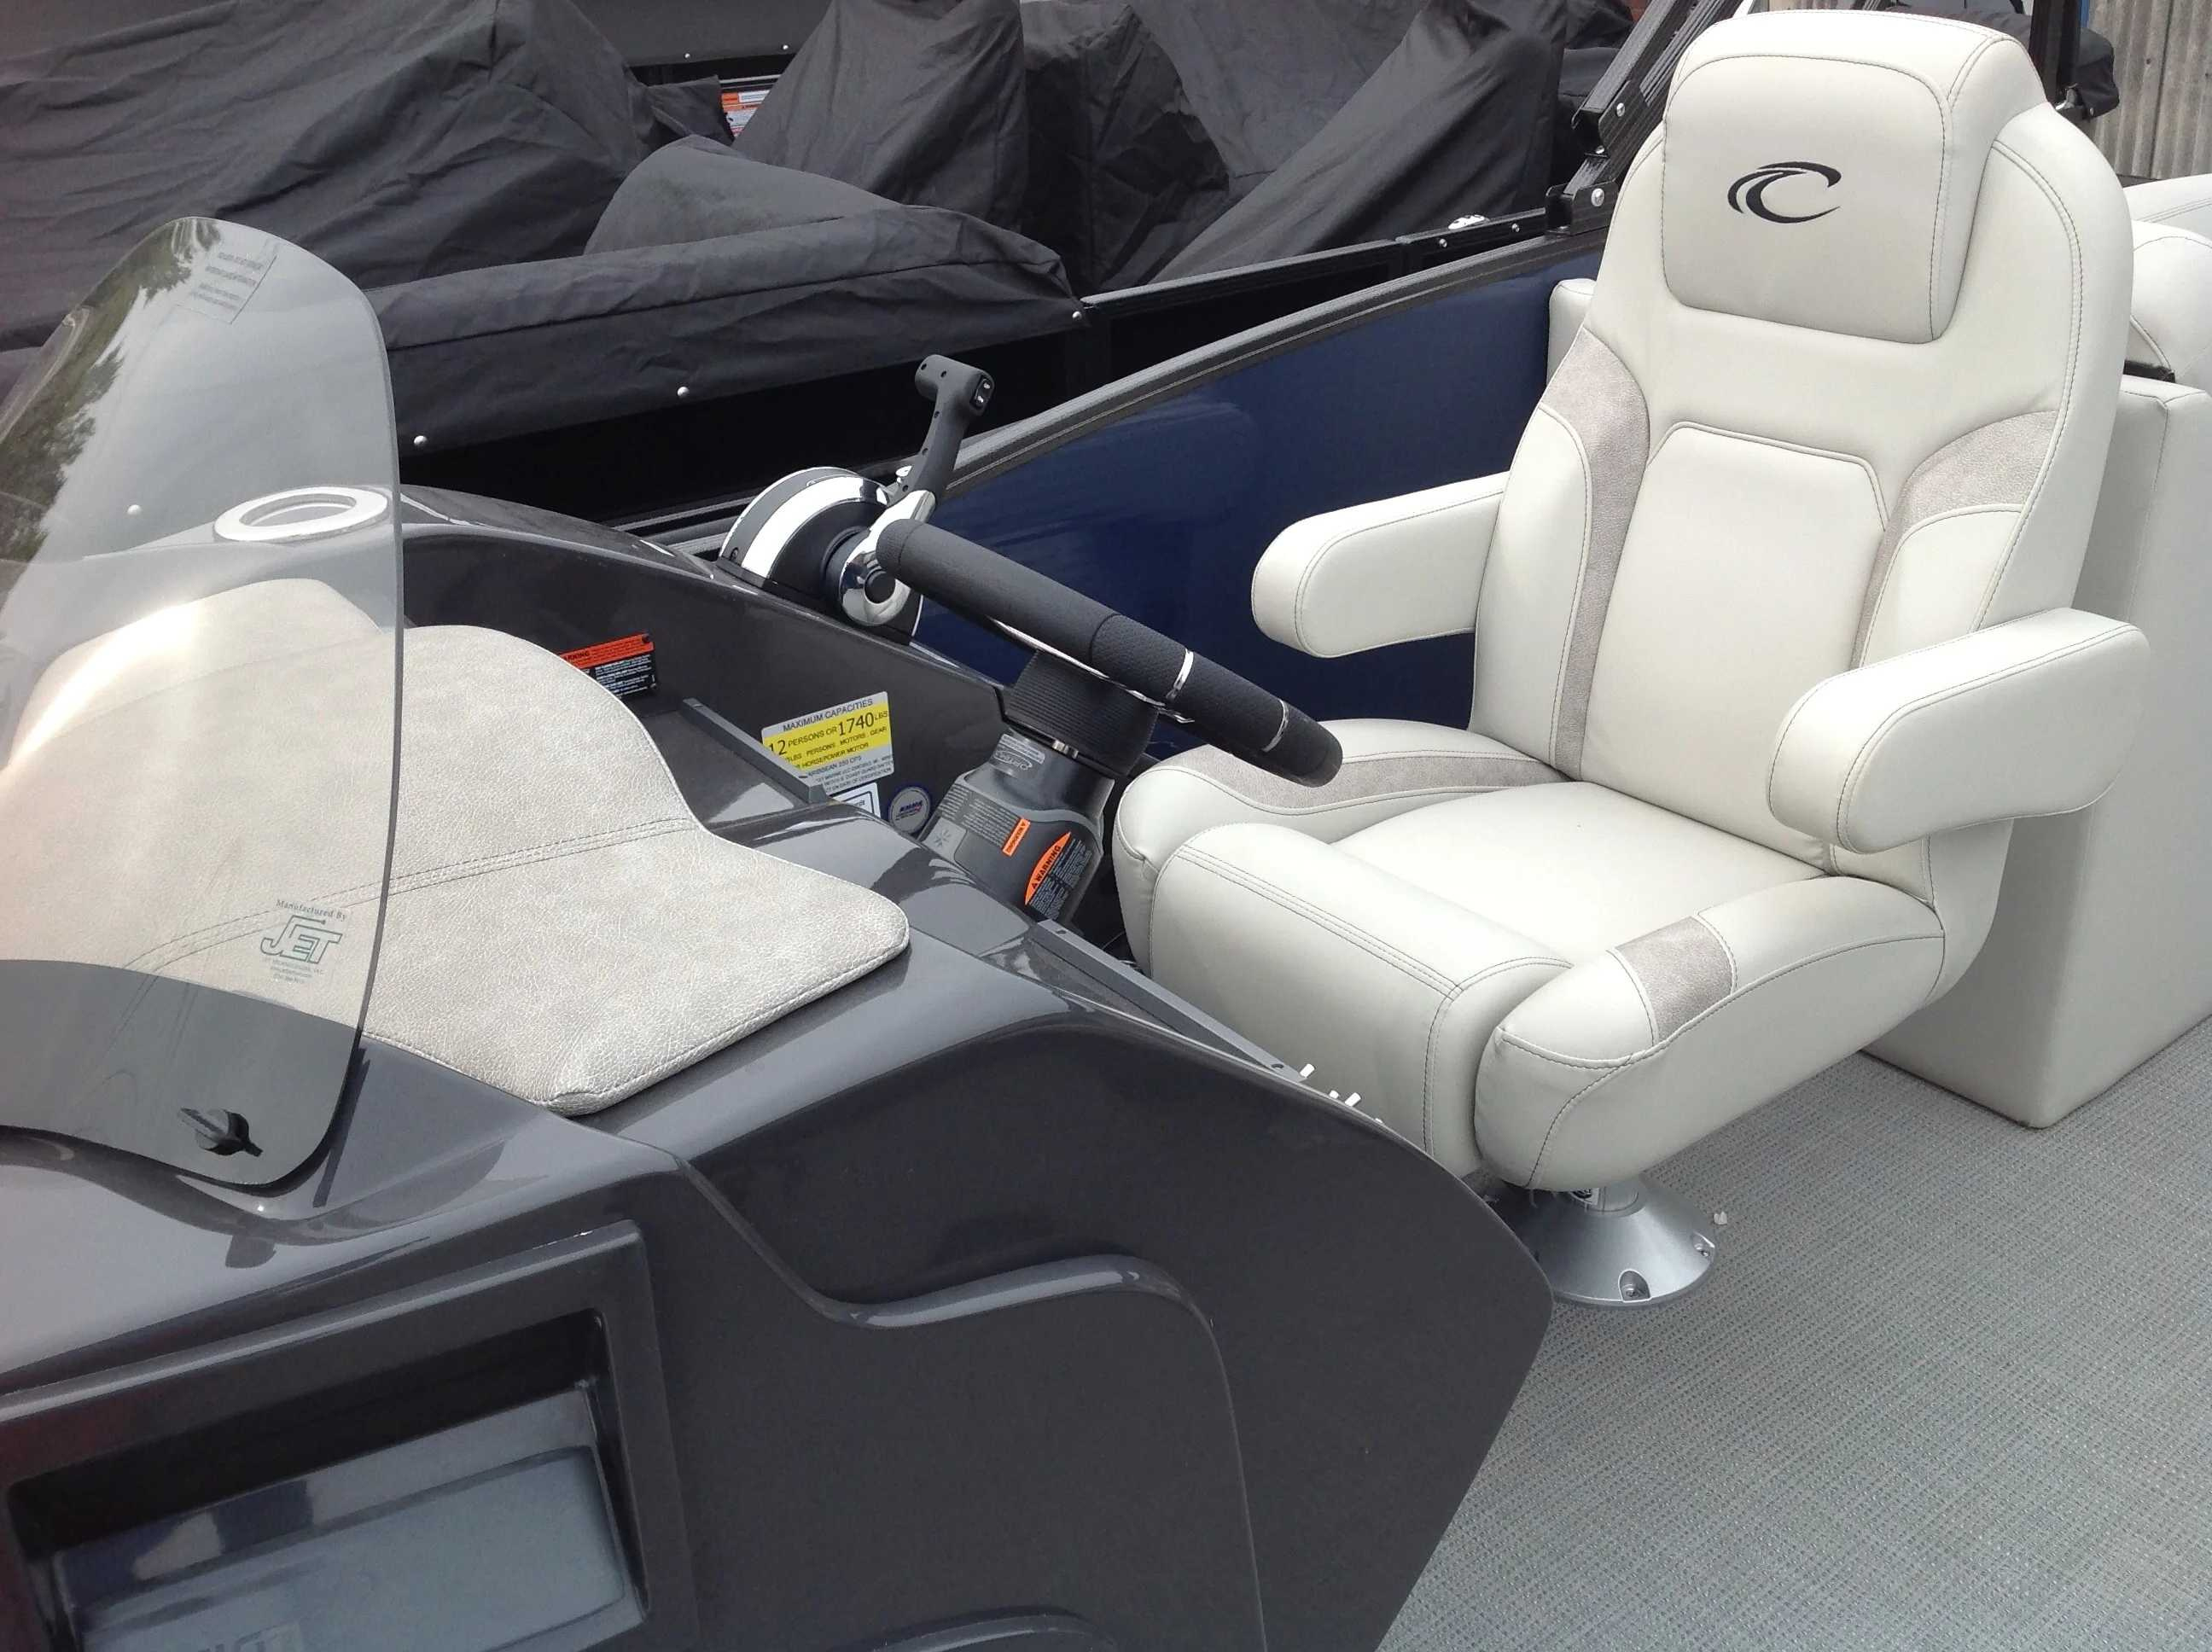 2020 Crest boat for sale, model of the boat is Caribbean Lx250 Slc & Image # 7 of 16